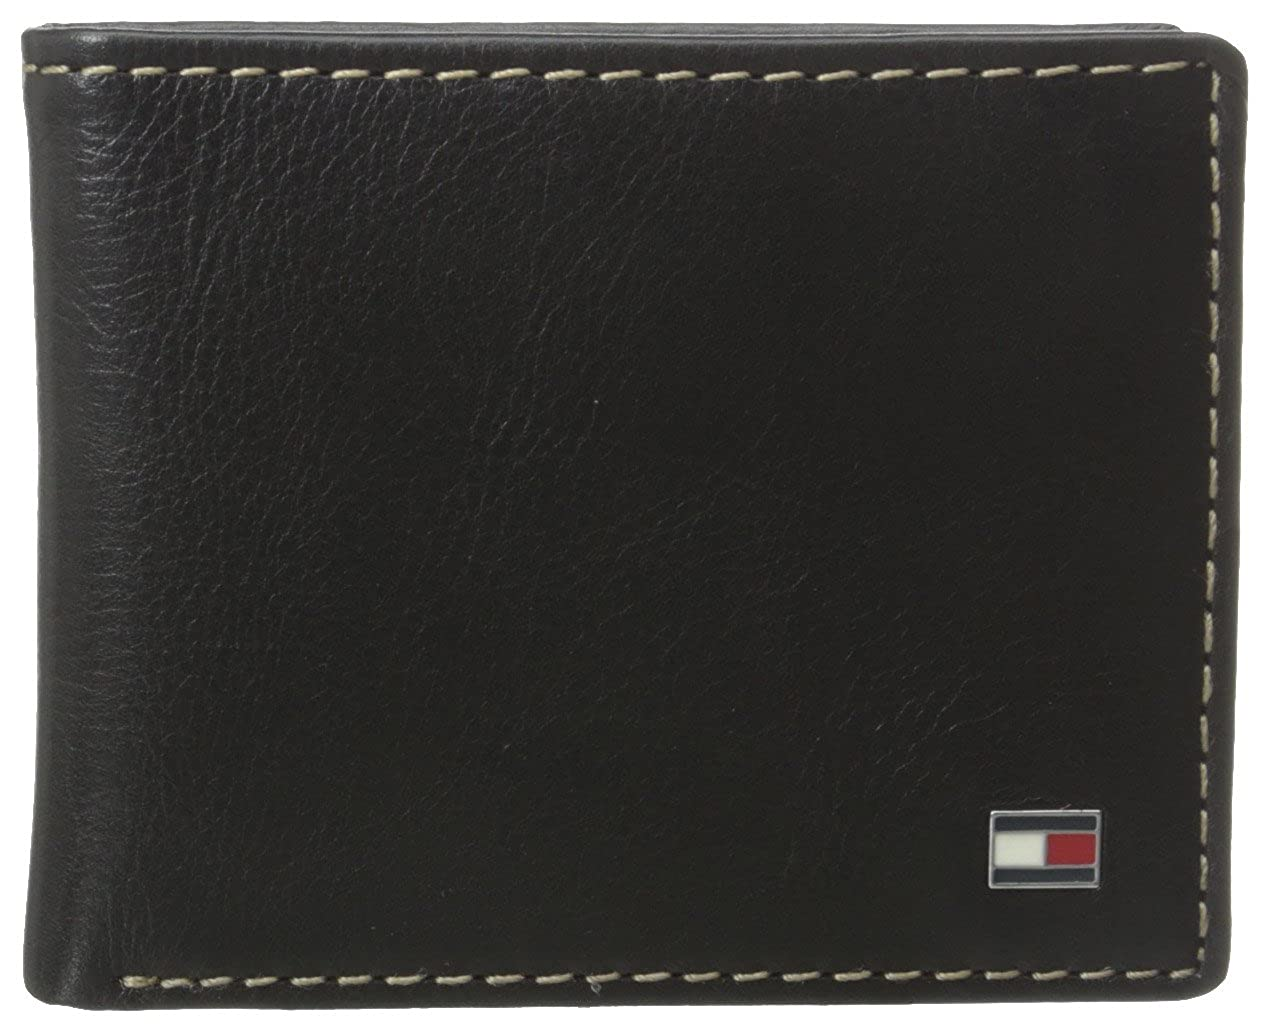 254c10b8 Tommy Hilfiger Men's Bifold Wallet - Leather Slim Thin Classic Billfold for  Men with Credit Card Slots, Black, One Size at Amazon Men's Clothing store: